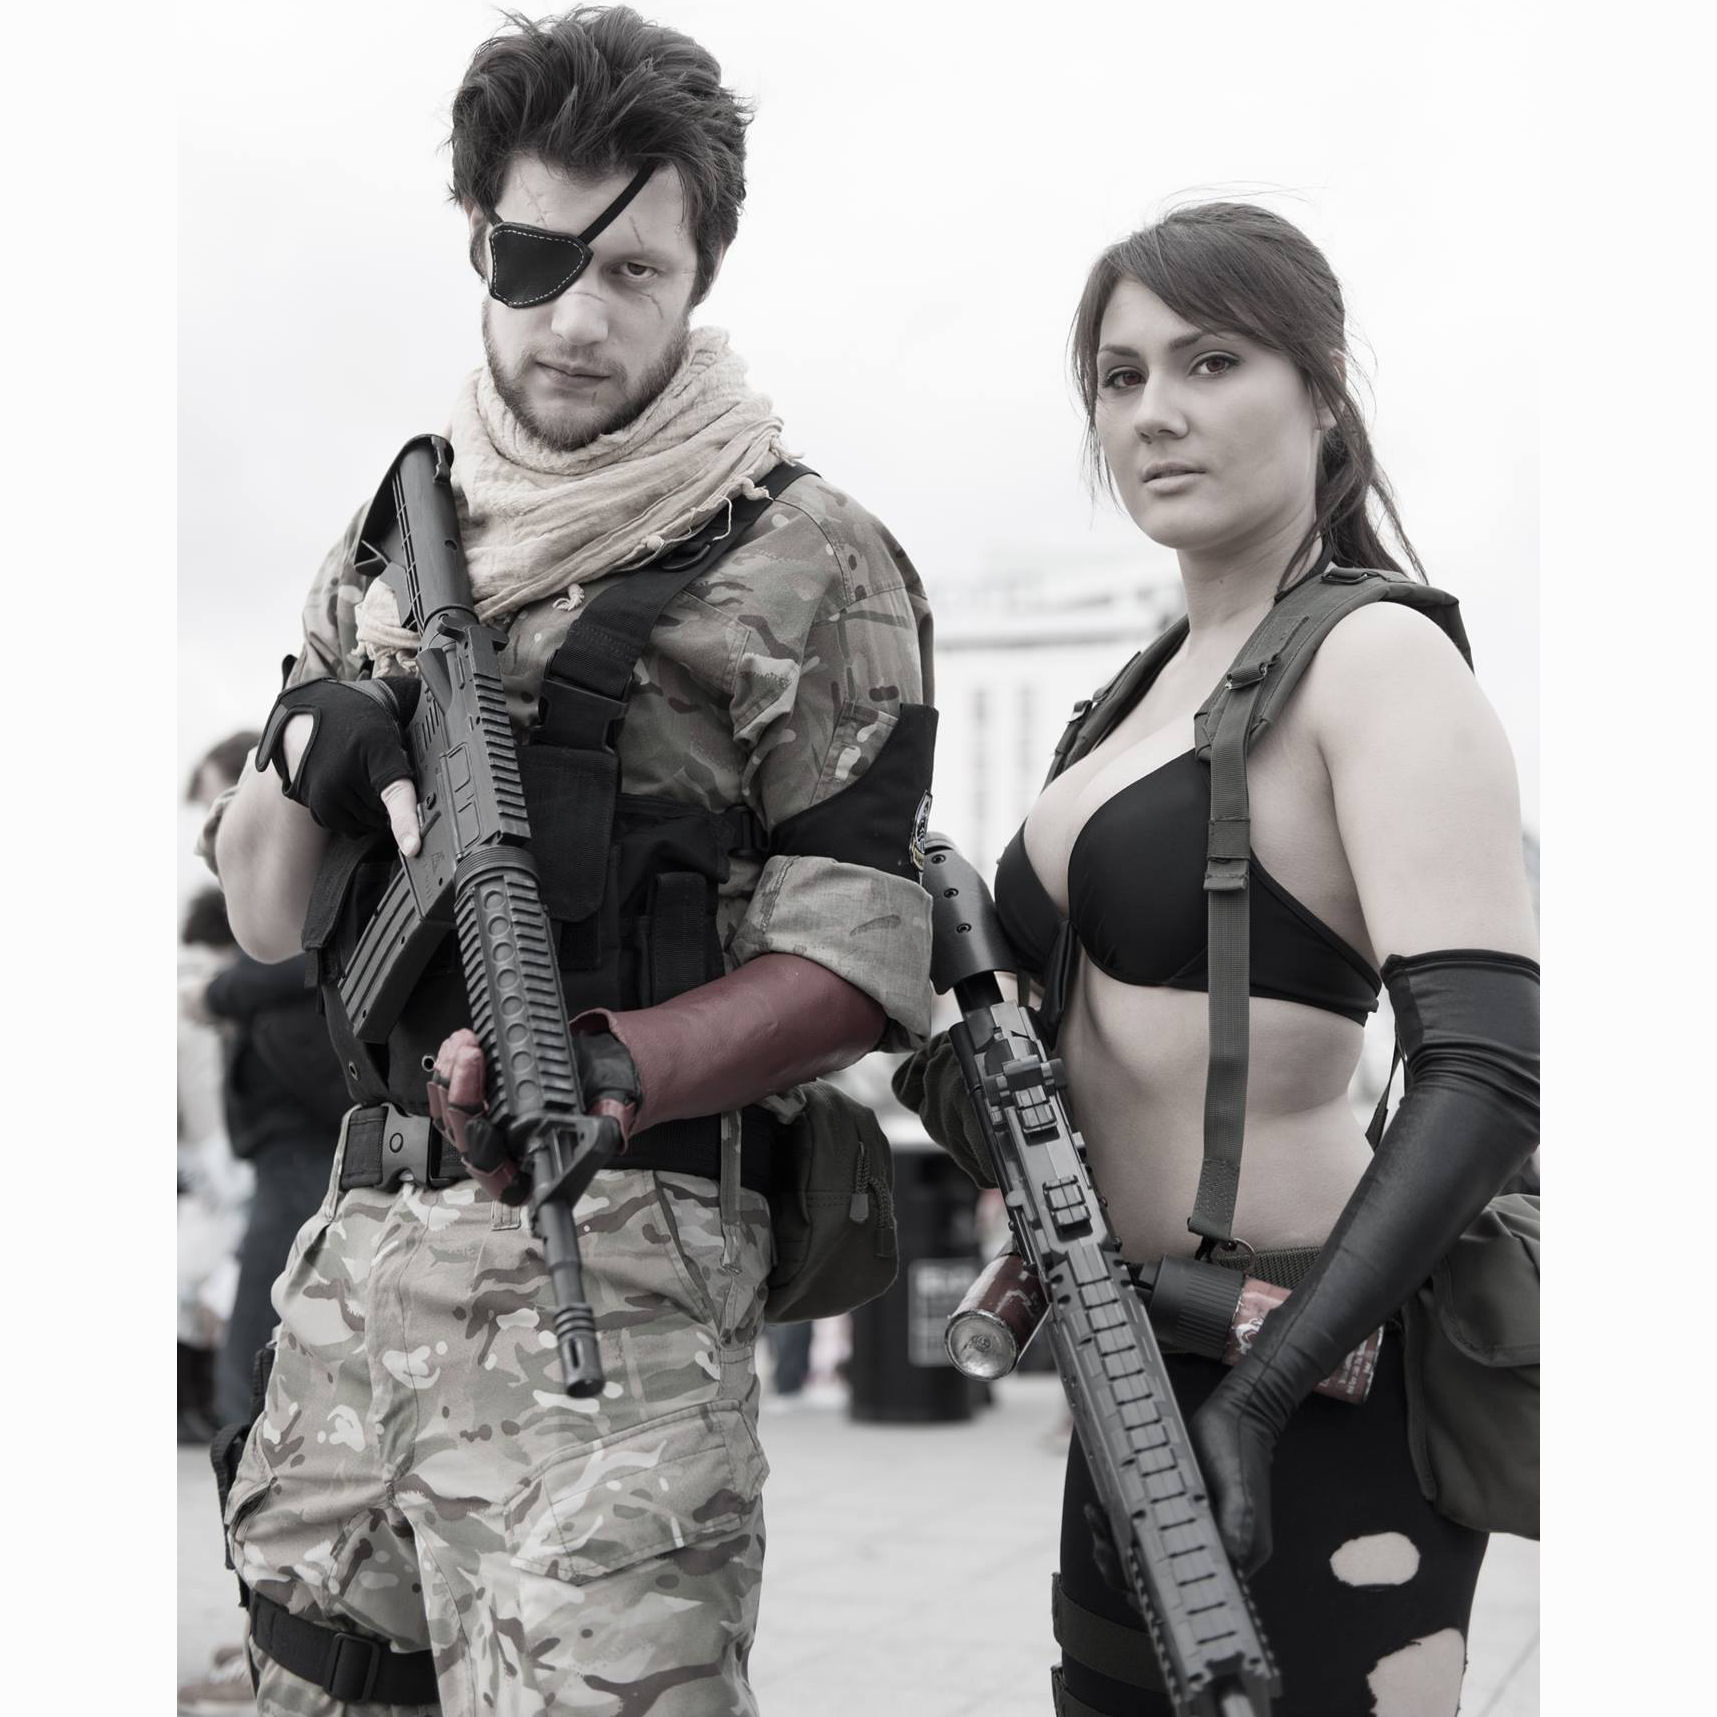 Metal Gear Solid 5 Cosplay Photo 1